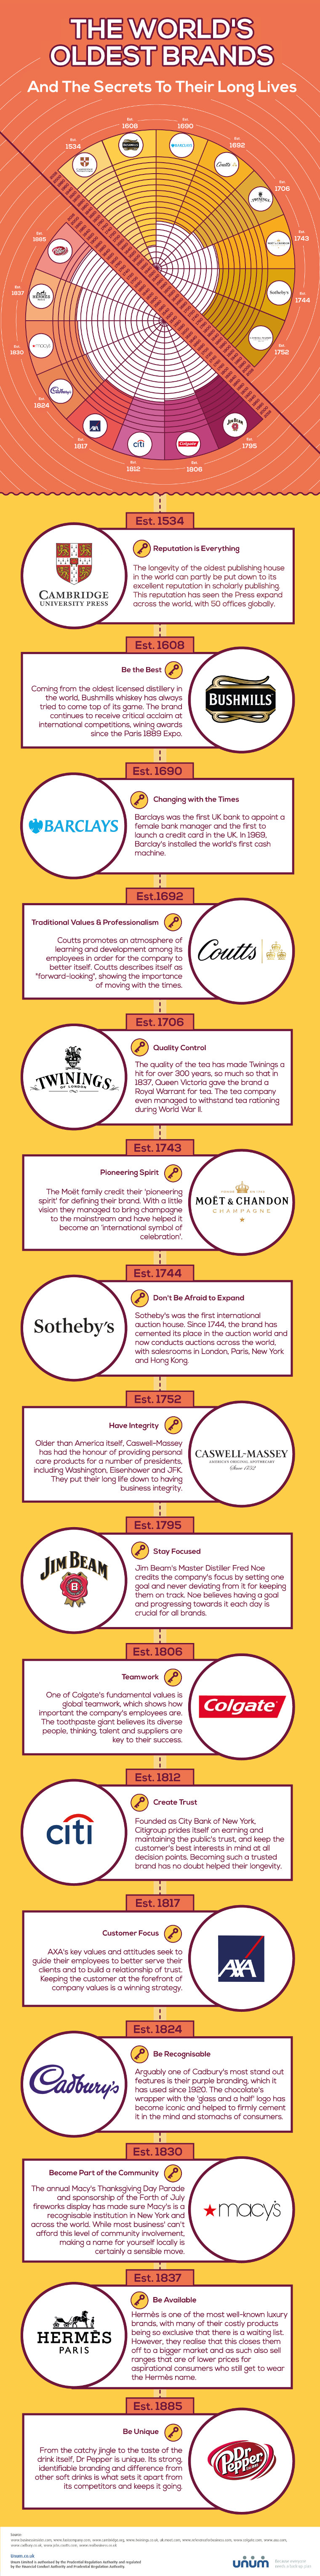 Oldest brands' secrets - infographic by Unum